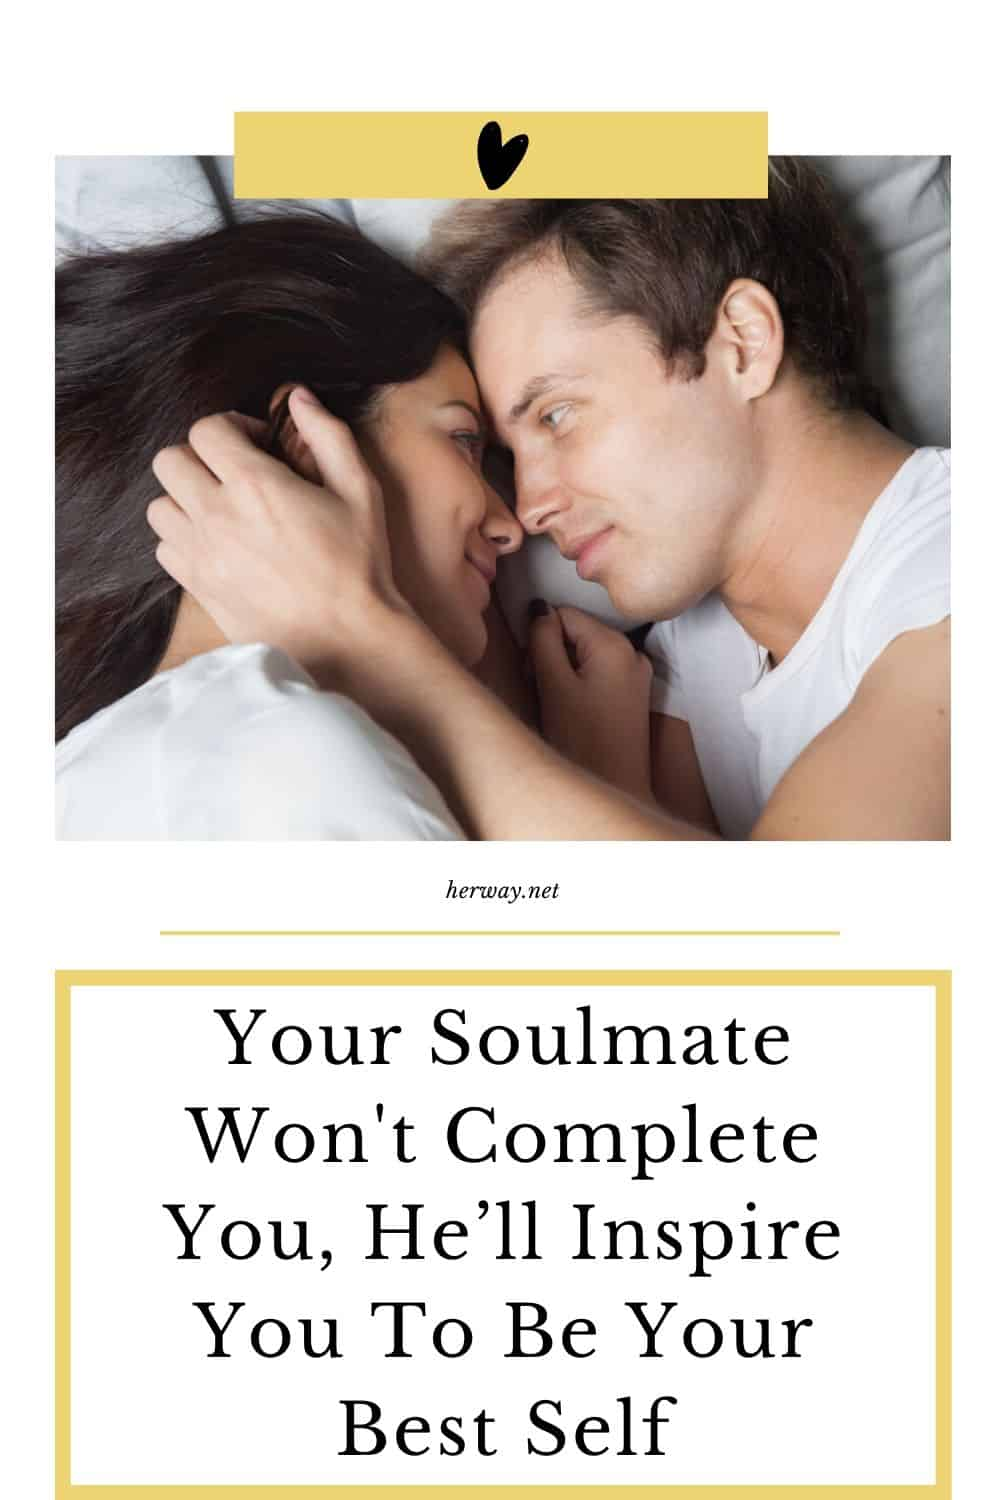 Your Soulmate Won't Complete You, He'll Inspire You To Be Your Best Self